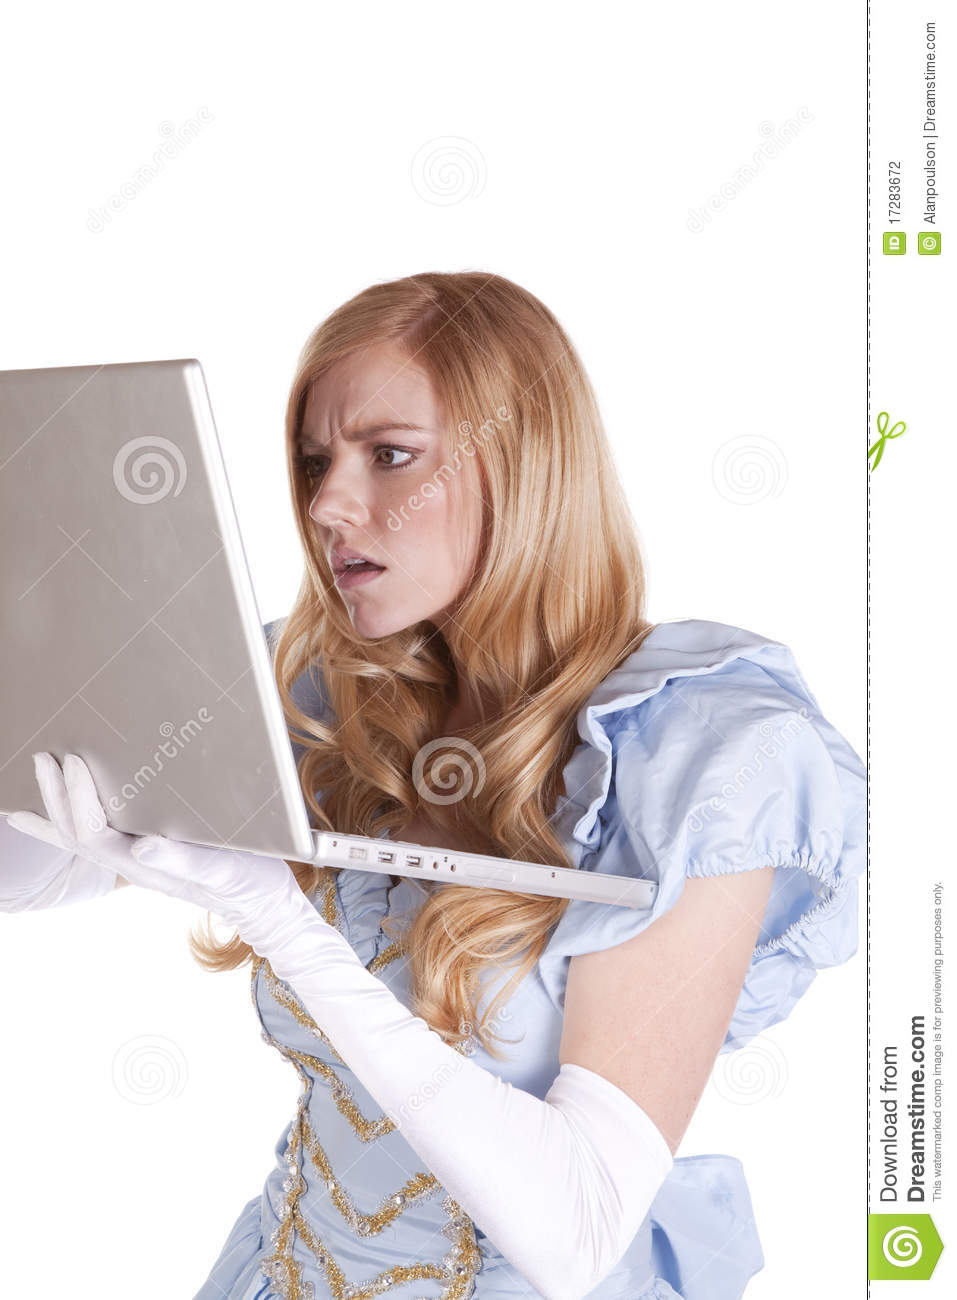 Princess surprised by computer